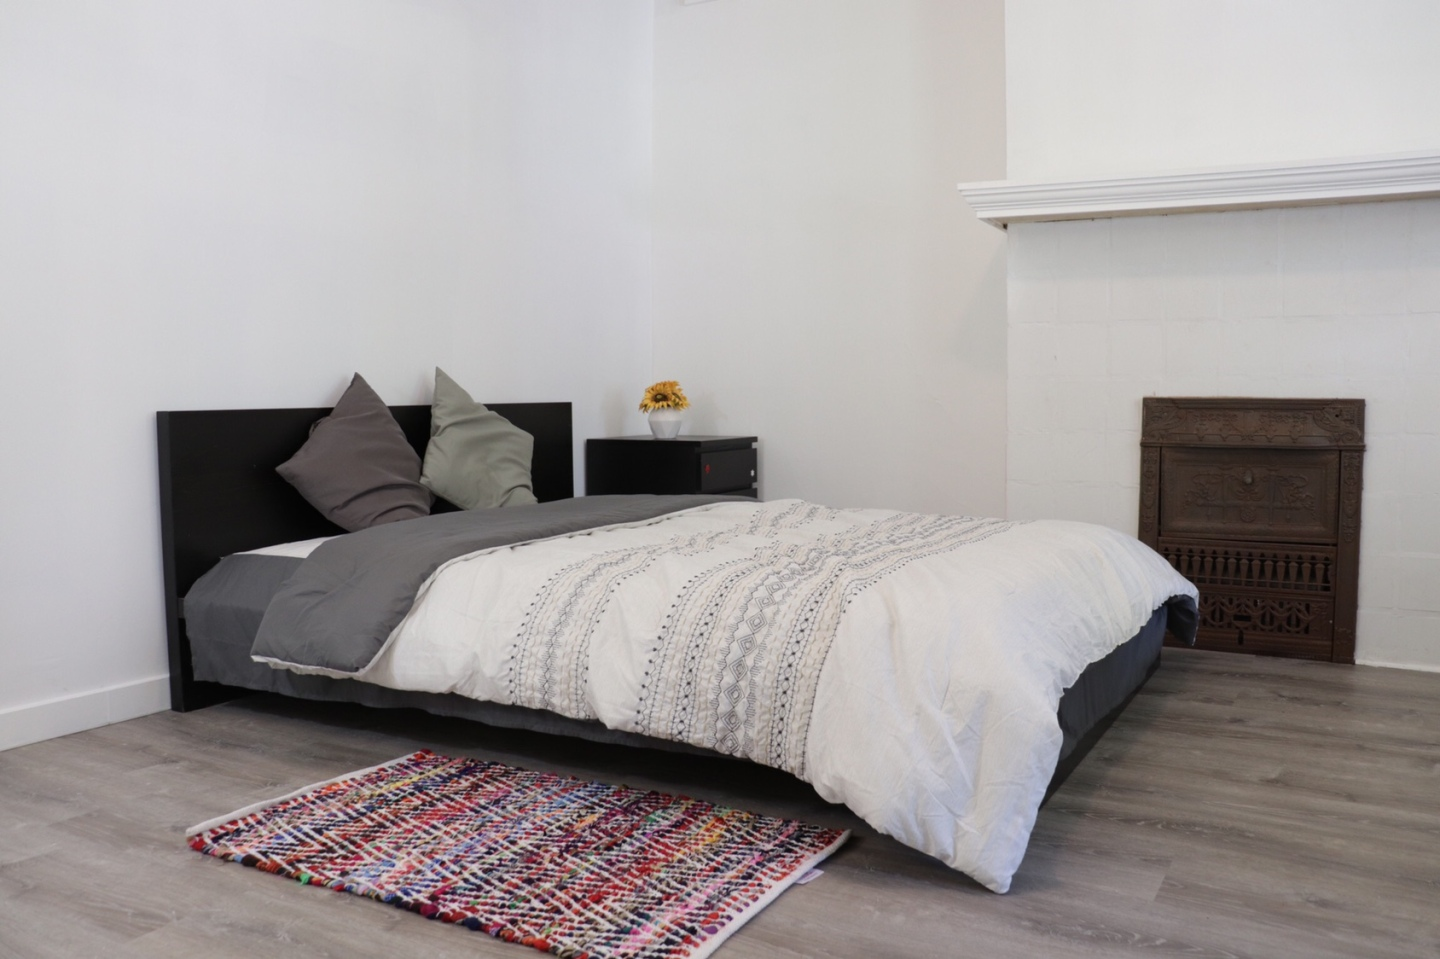 clean room, small bed with black bed frame, side view